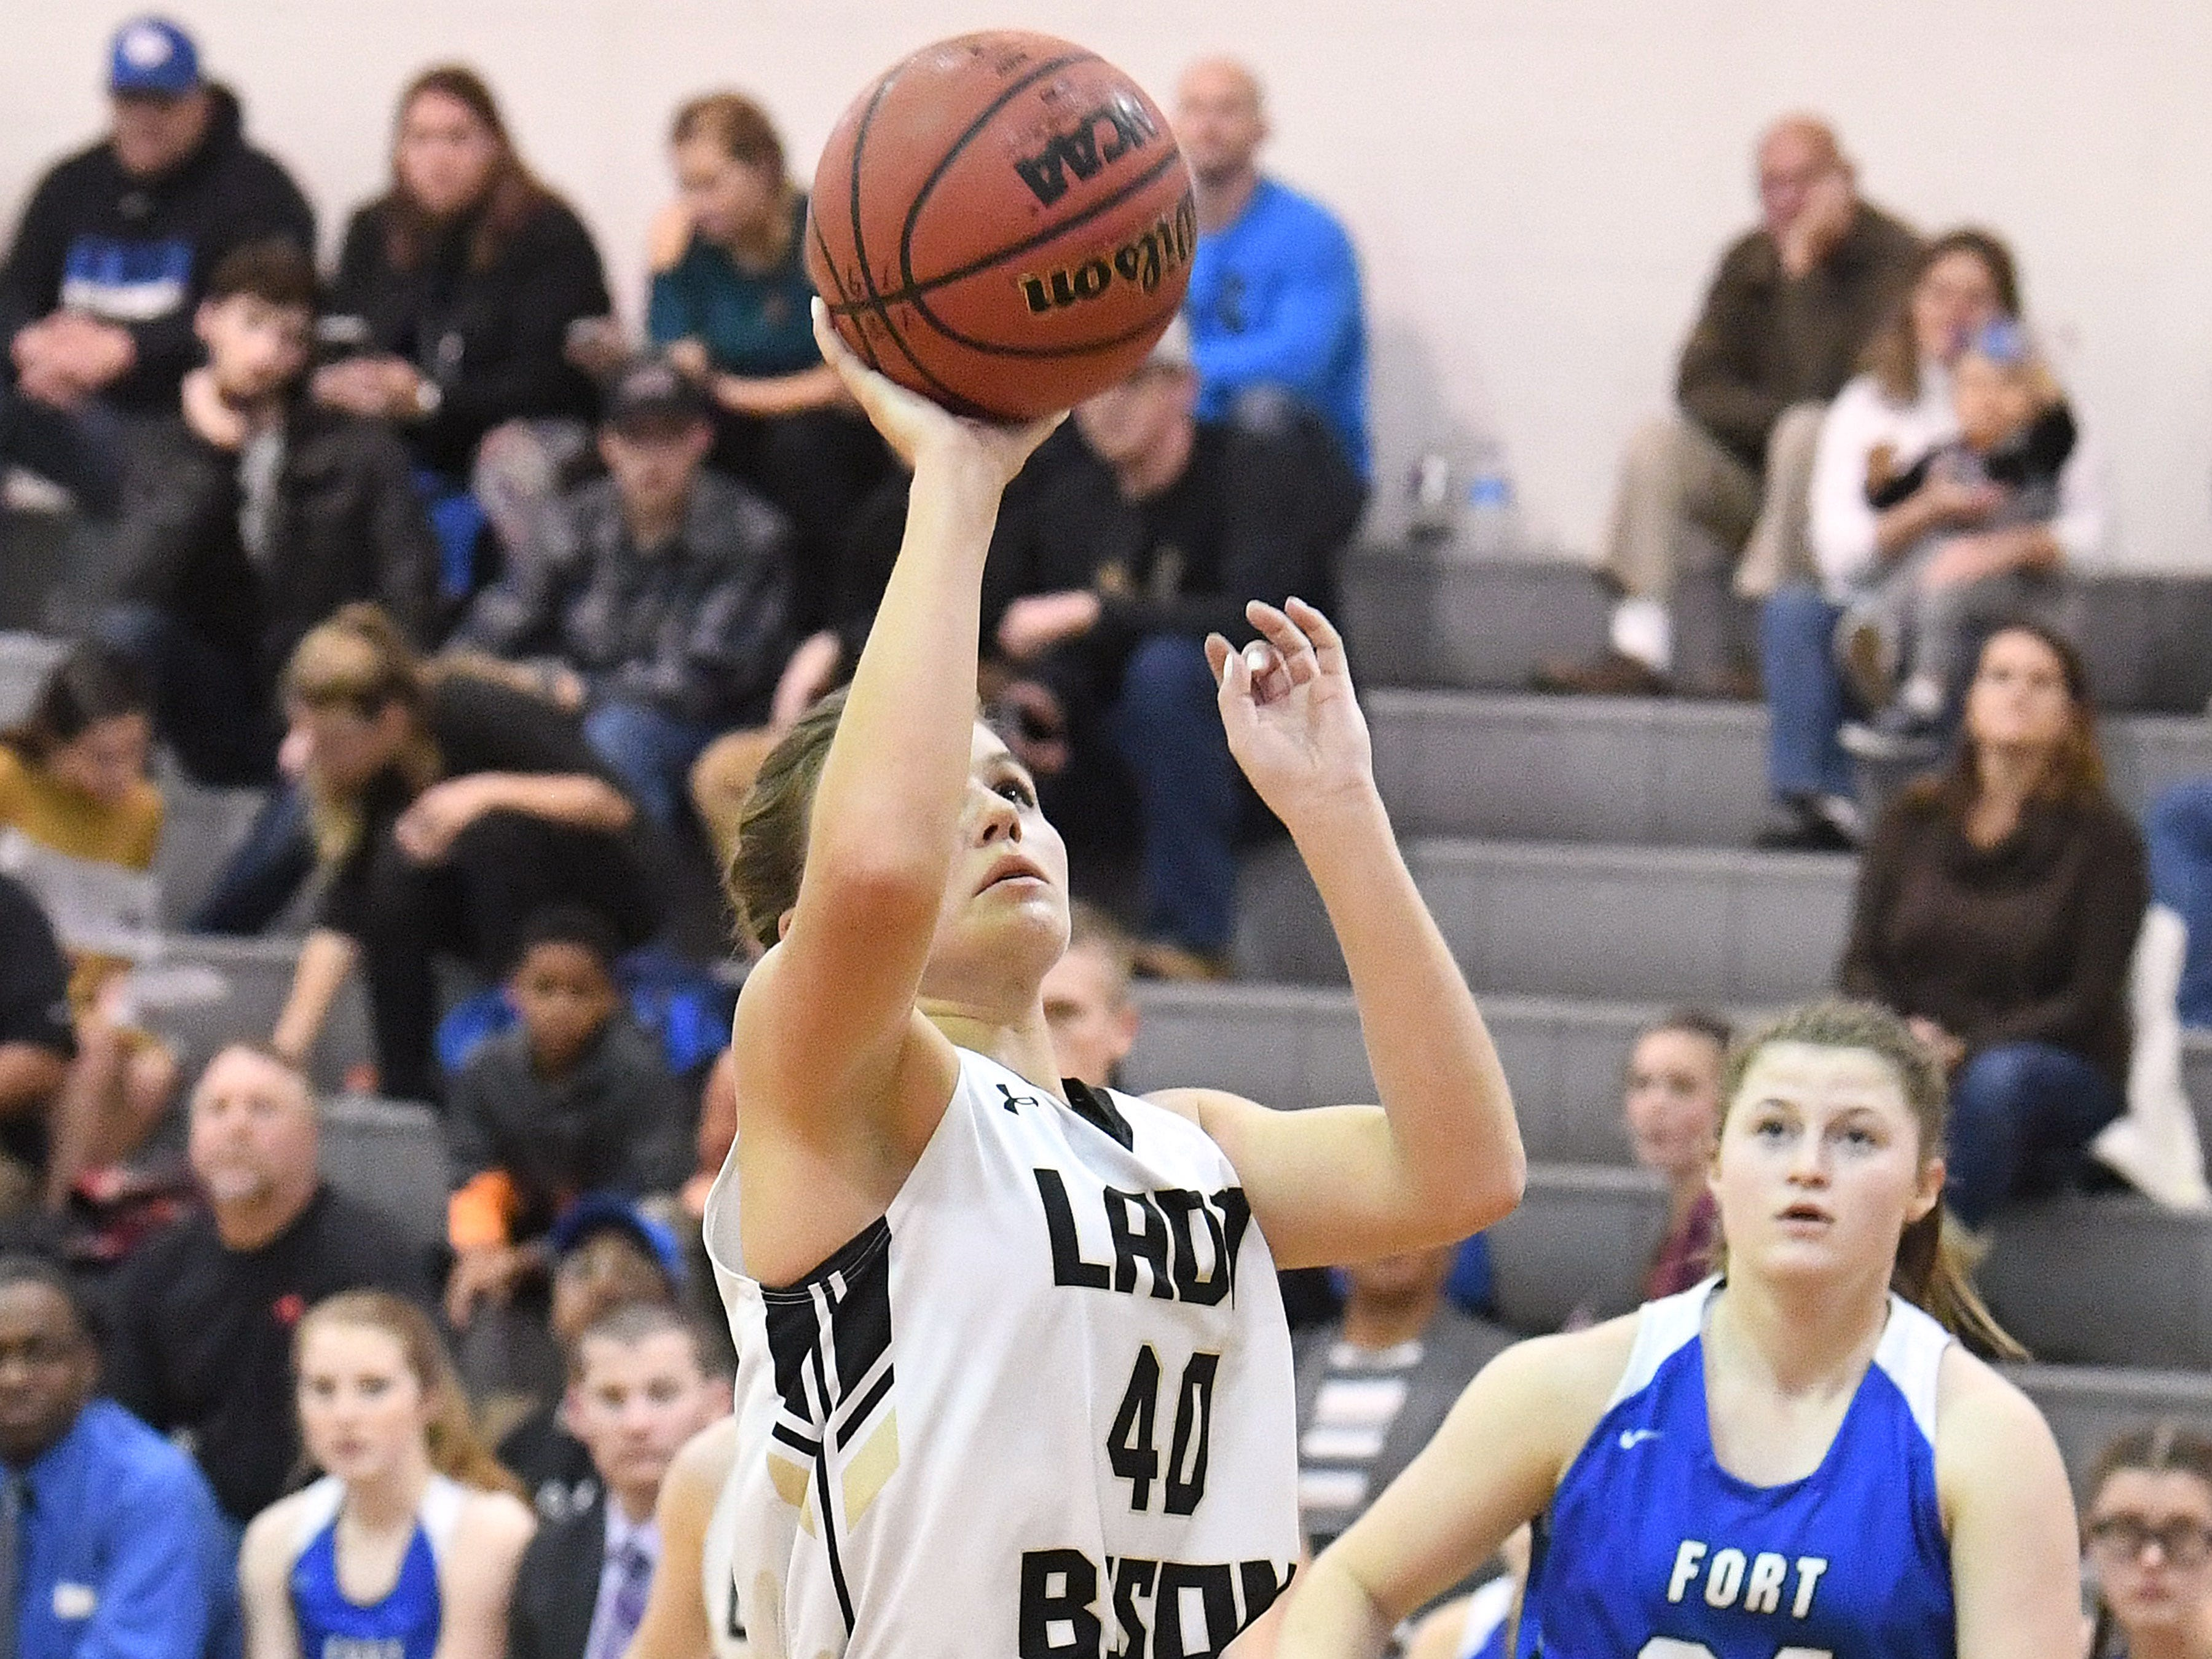 Buffalo Gap's Sydney Digman shoots during a game played in Swoope on Wednesday, Dec. 5, 2018.